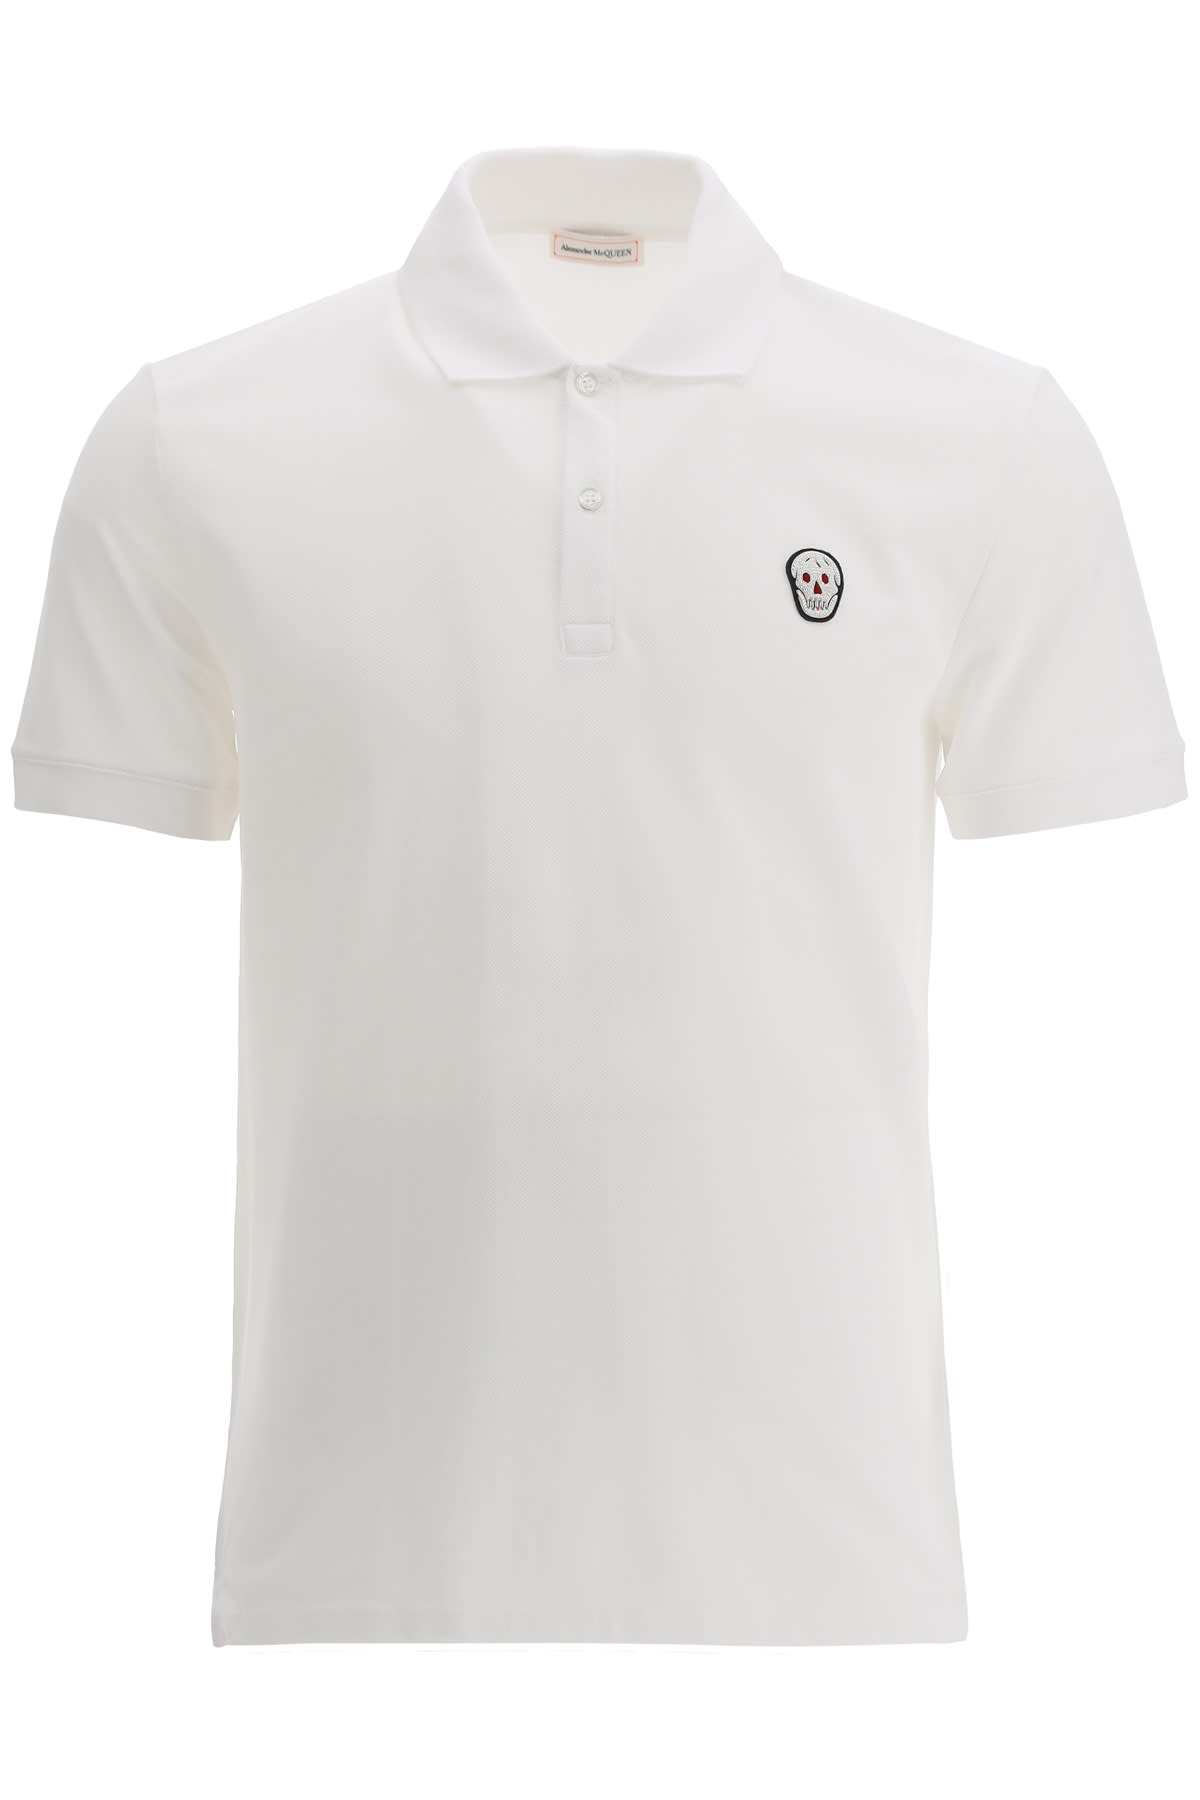 Alexander Mcqueen POLO SHIRT WITH SKULL PATCH